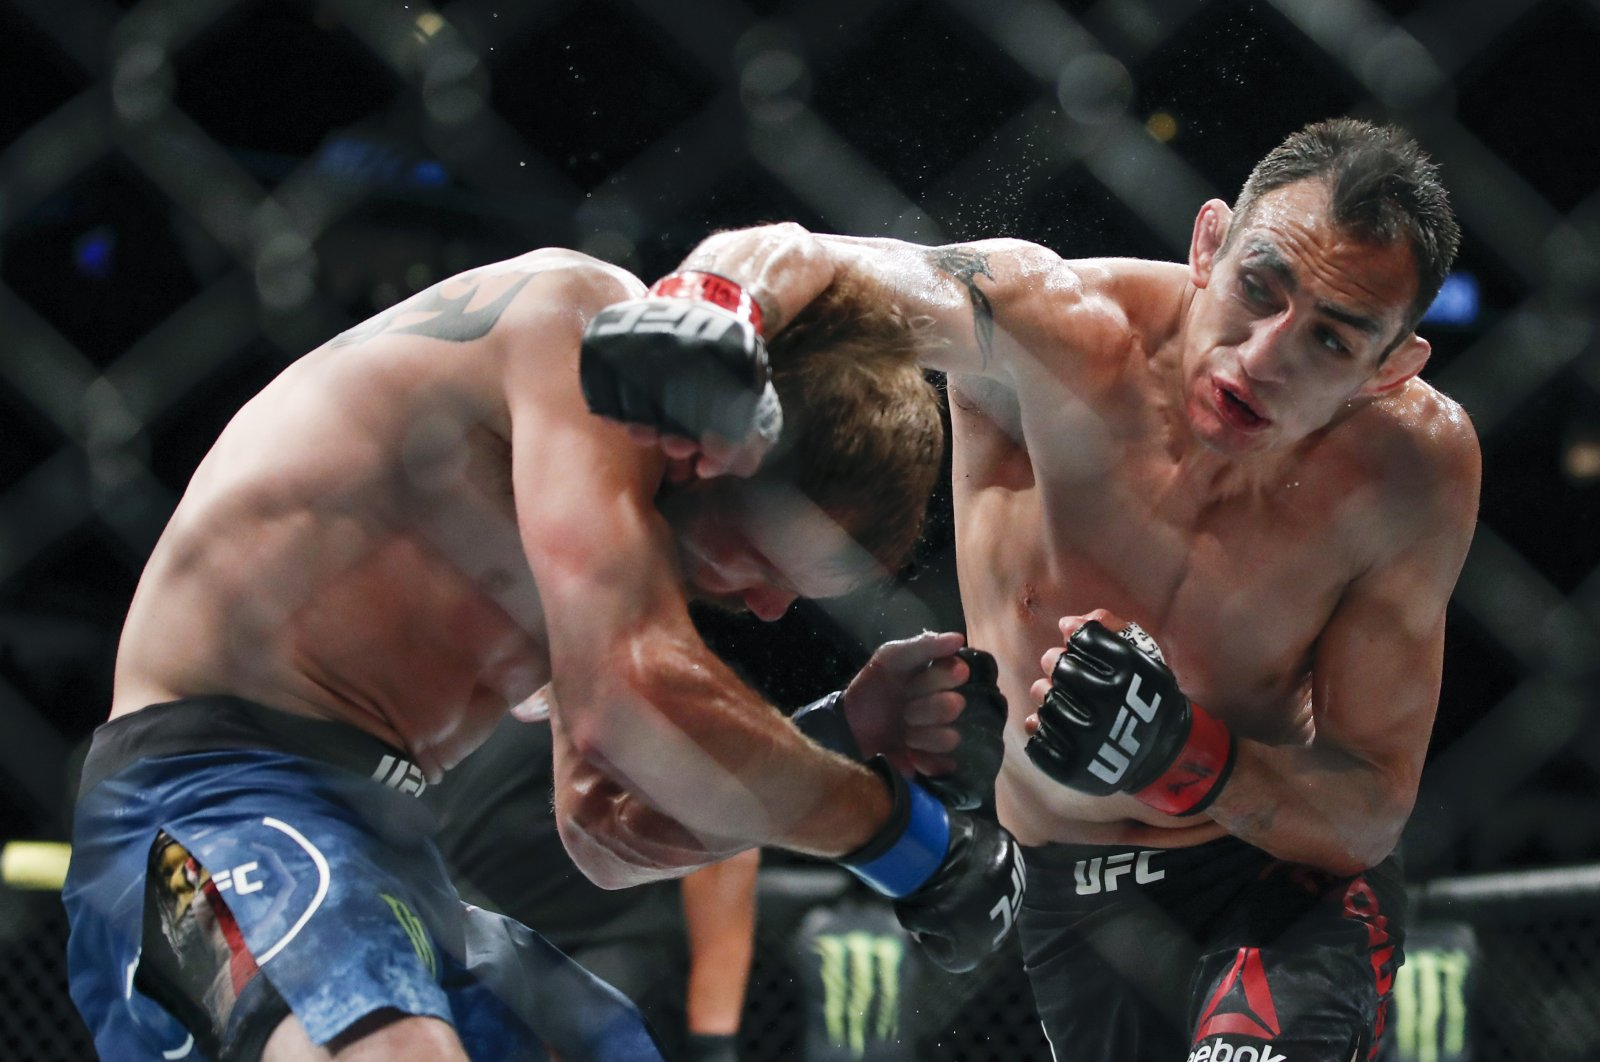 Tony Ferguson (R) punches Donald Cerrone during their lightweight mixed martial arts bout at UFC 238 in Chicago, Illinois., U.S., June 8, 2019. (AP Photo)